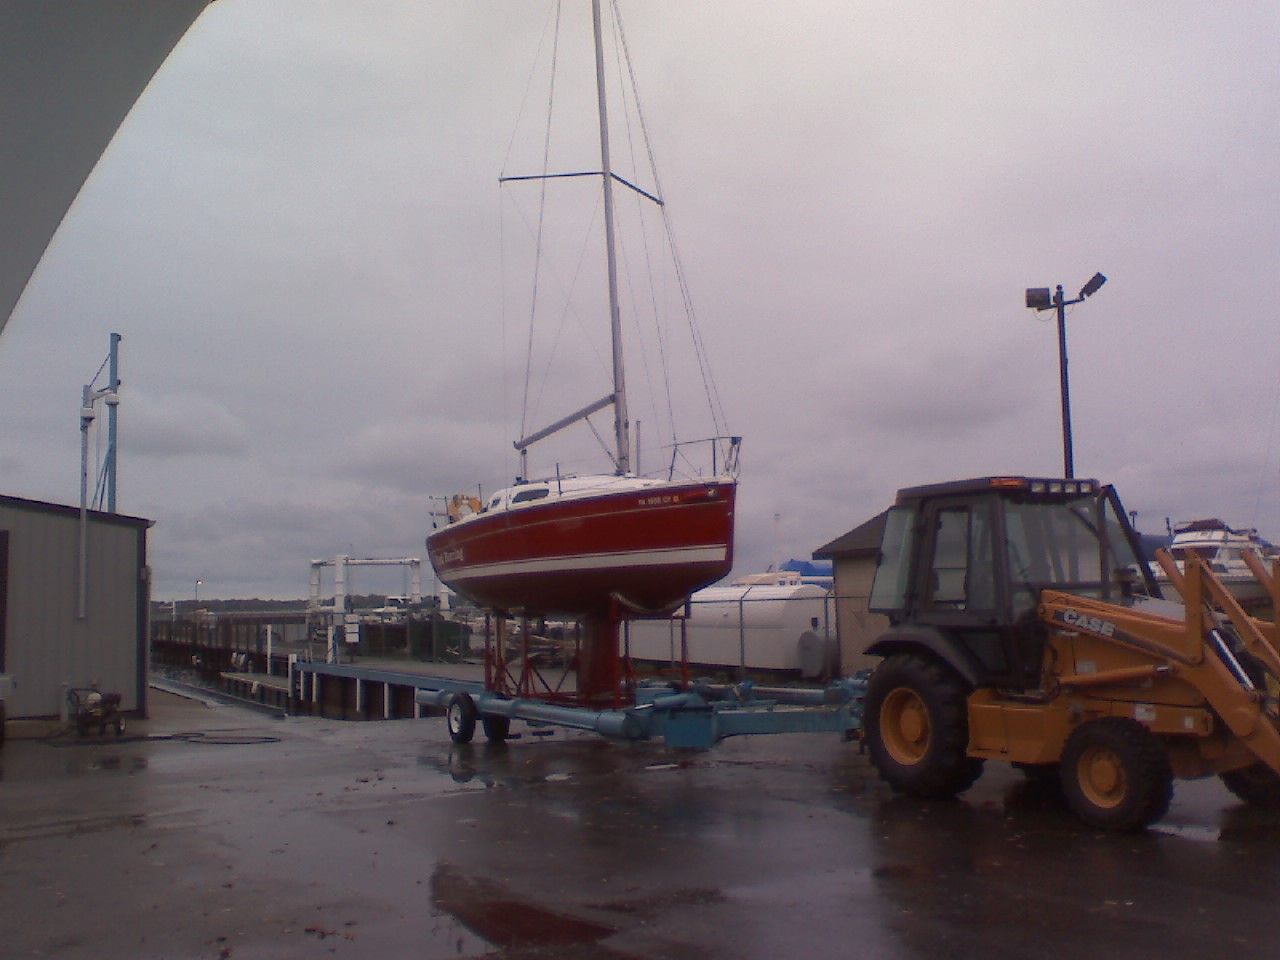 Red Herring on its way to winter storage